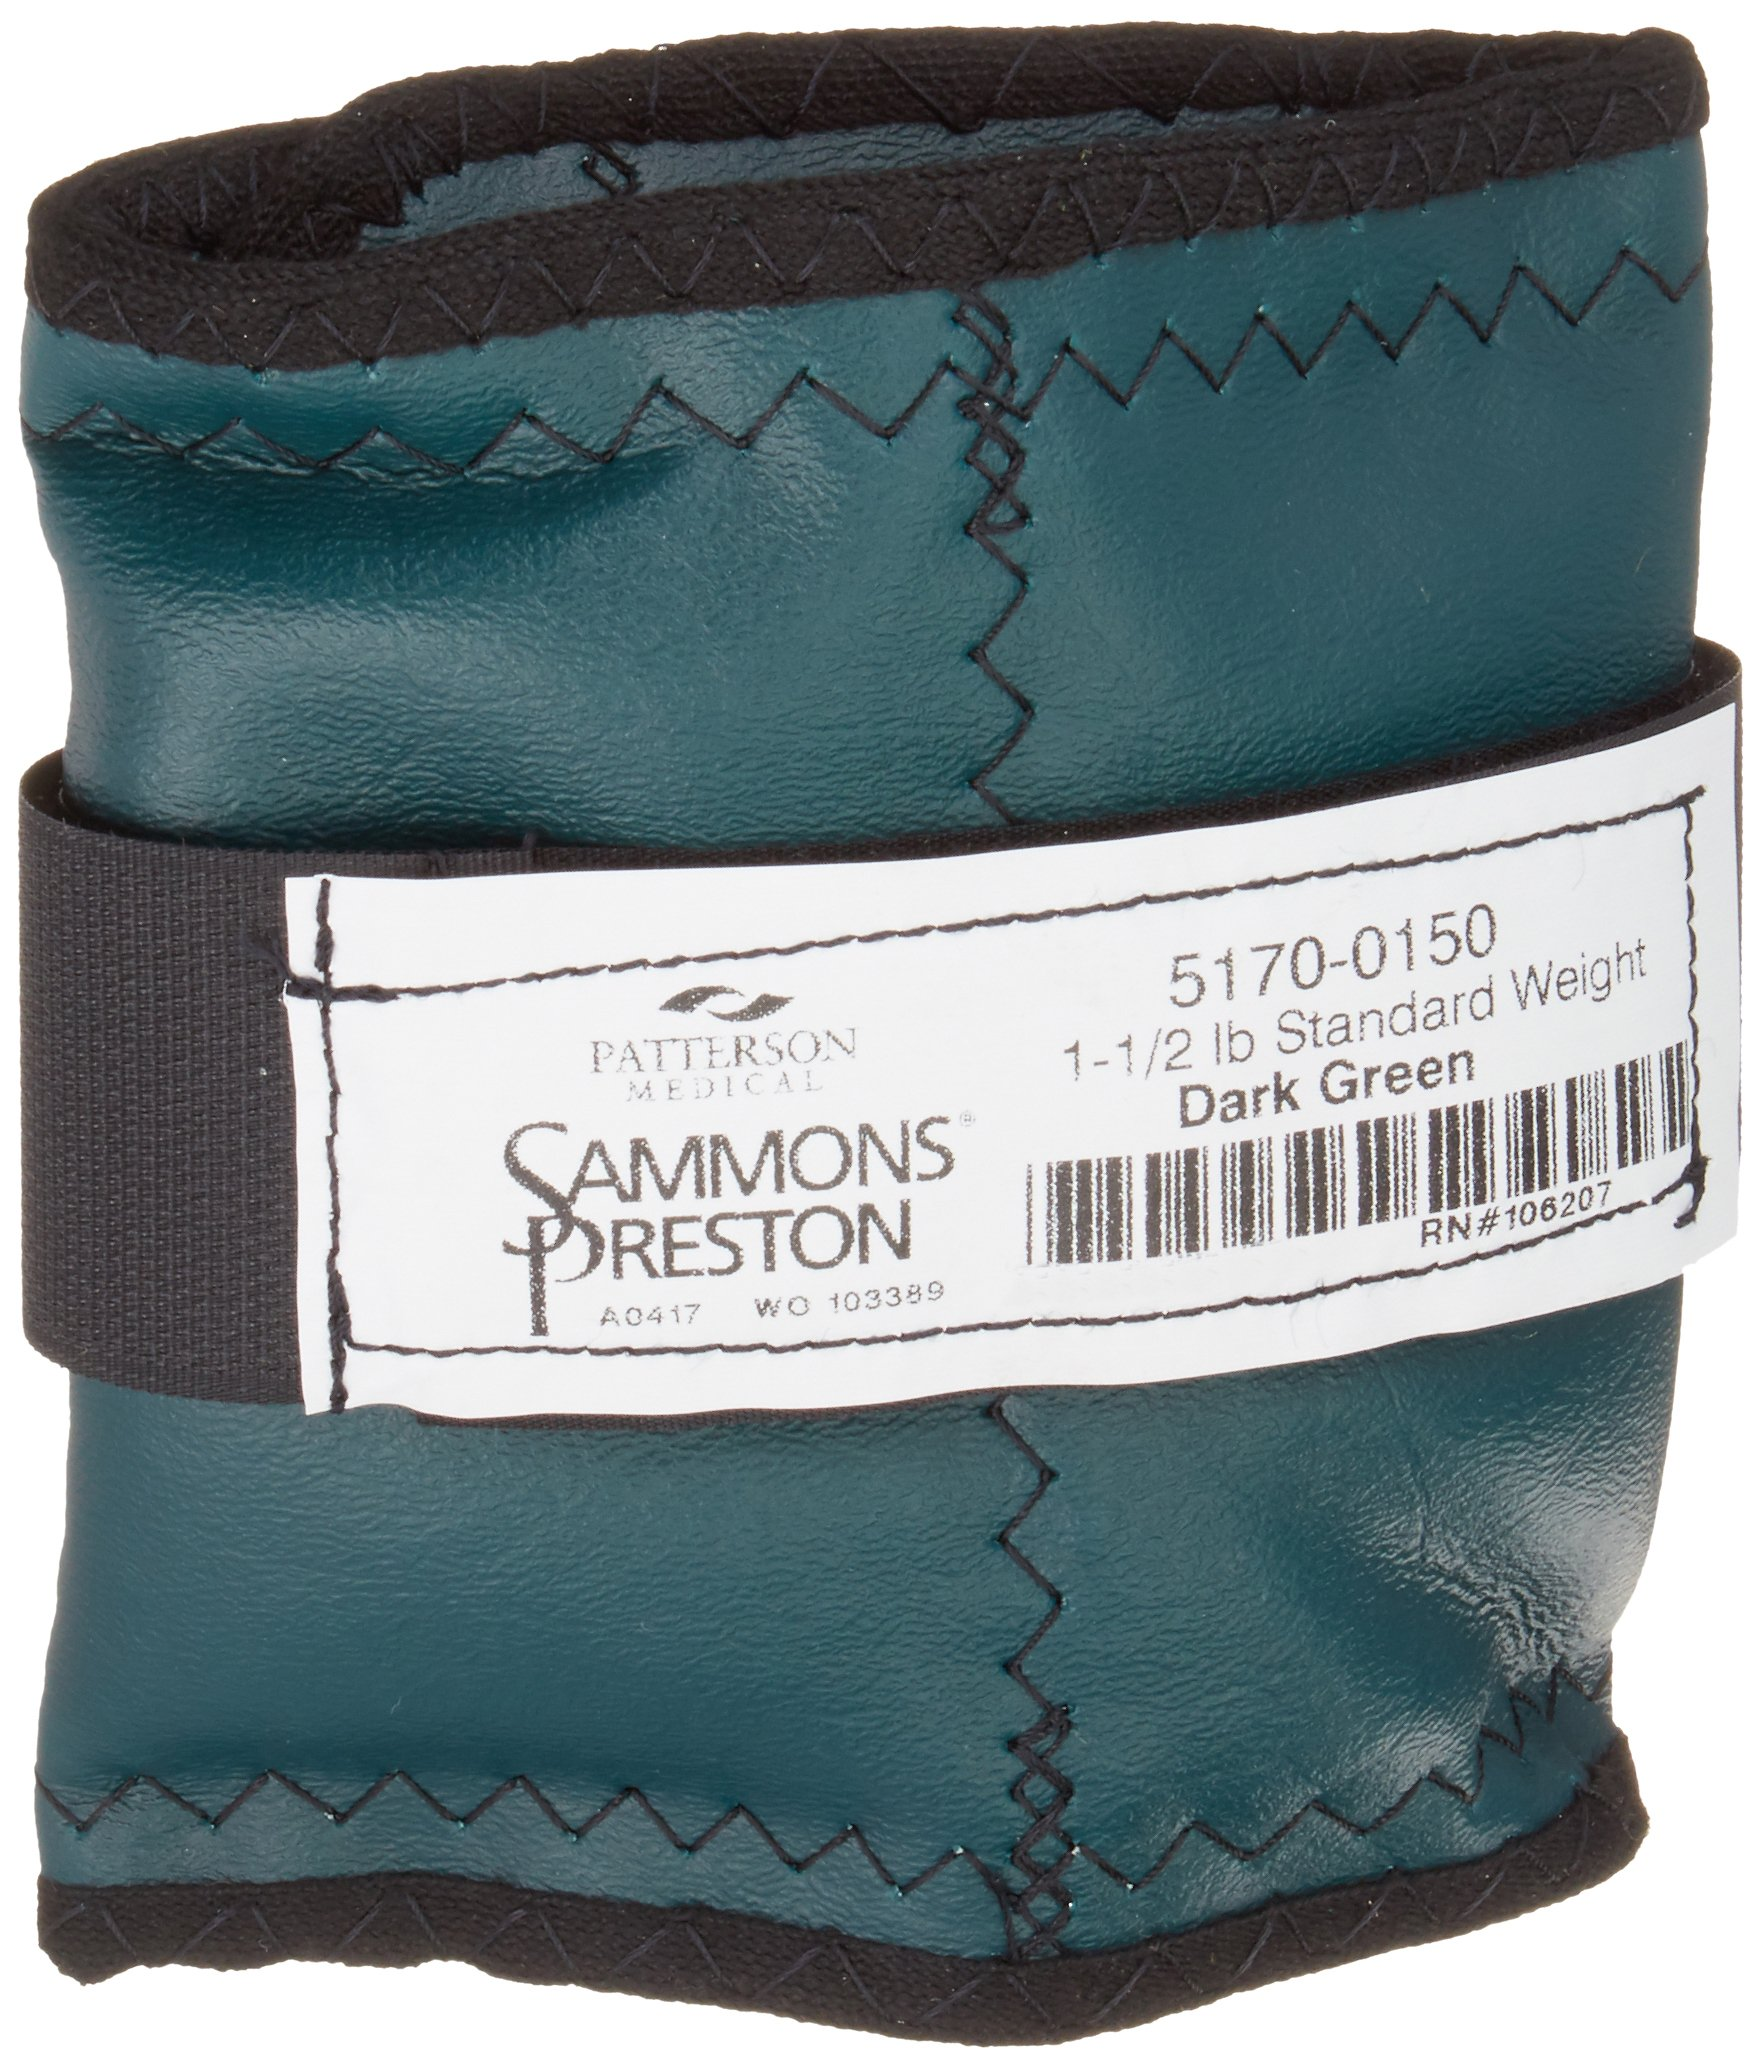 Sammons Preston Cuff Weight, 1.5 lb, Dark Green,Strap & D-Ring Closure, Grommet for Easy Hanging, Steel Ankle & Wrist Weights are Lead Free, Exercise Tool for Strength Building & Injury Rehab